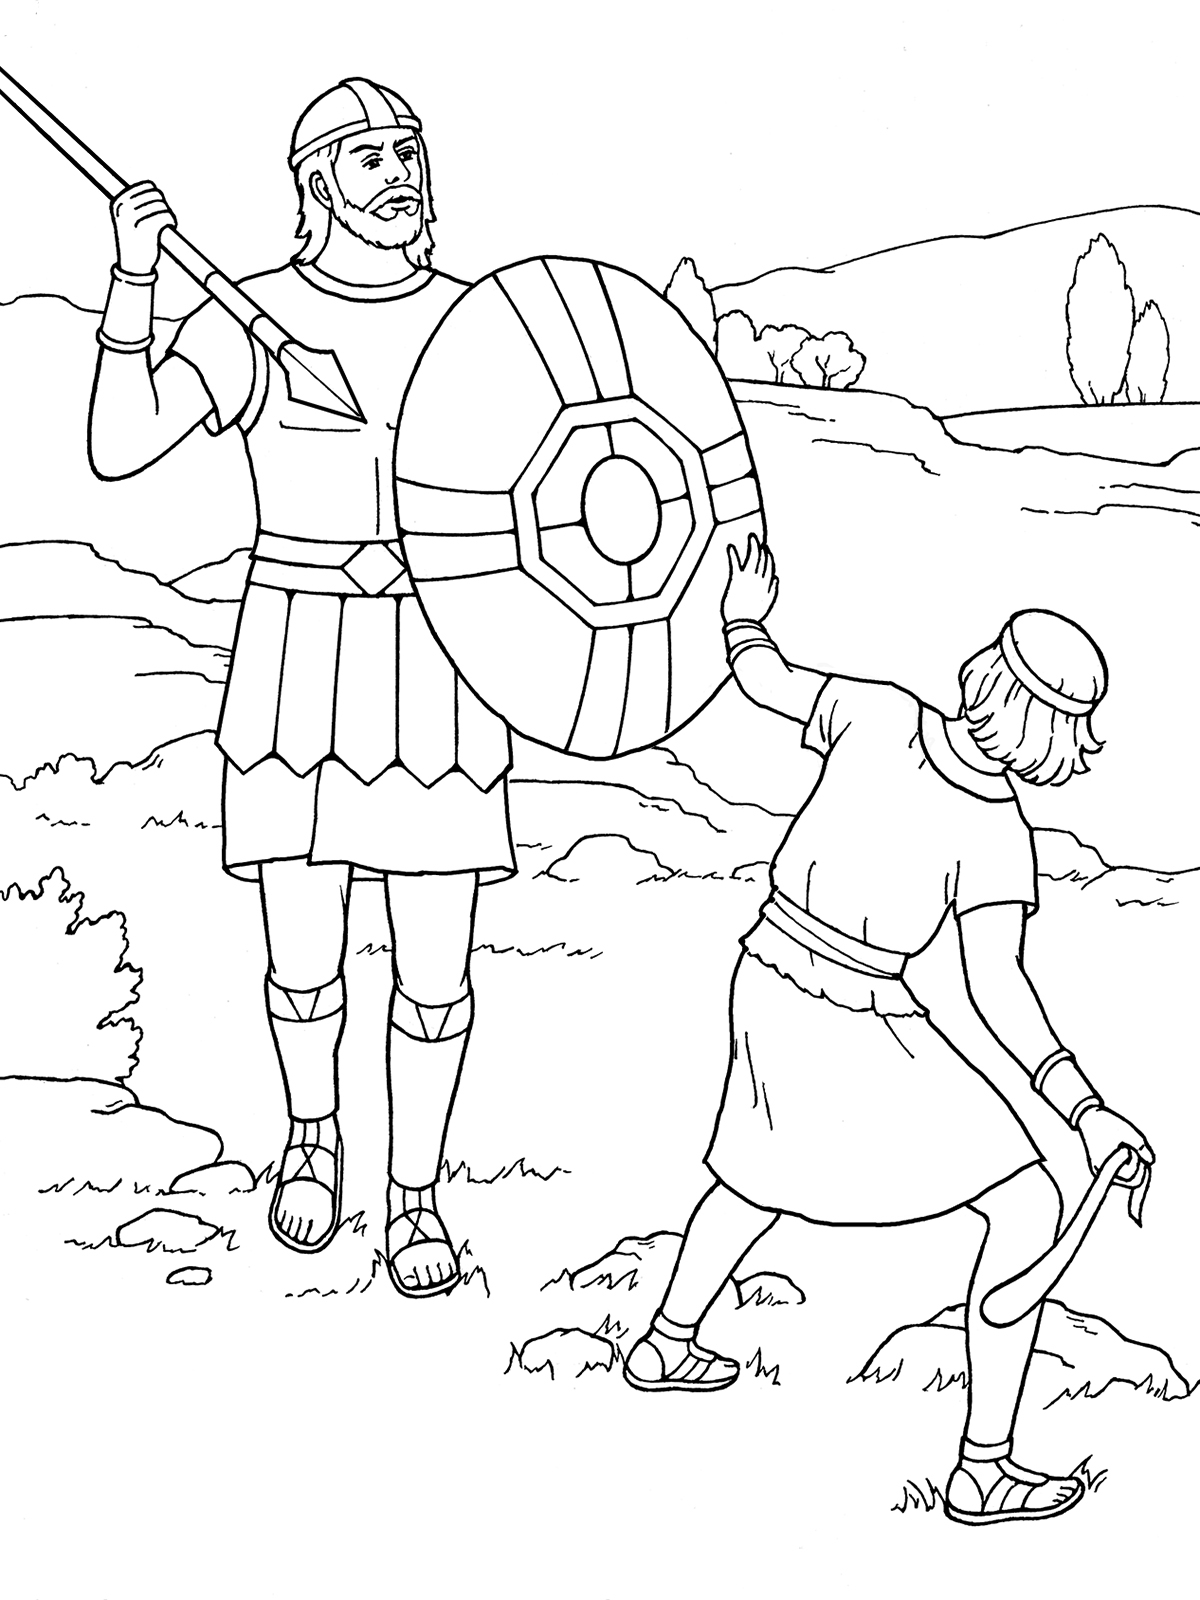 bible coloring pages david and goliath | David and Goliath